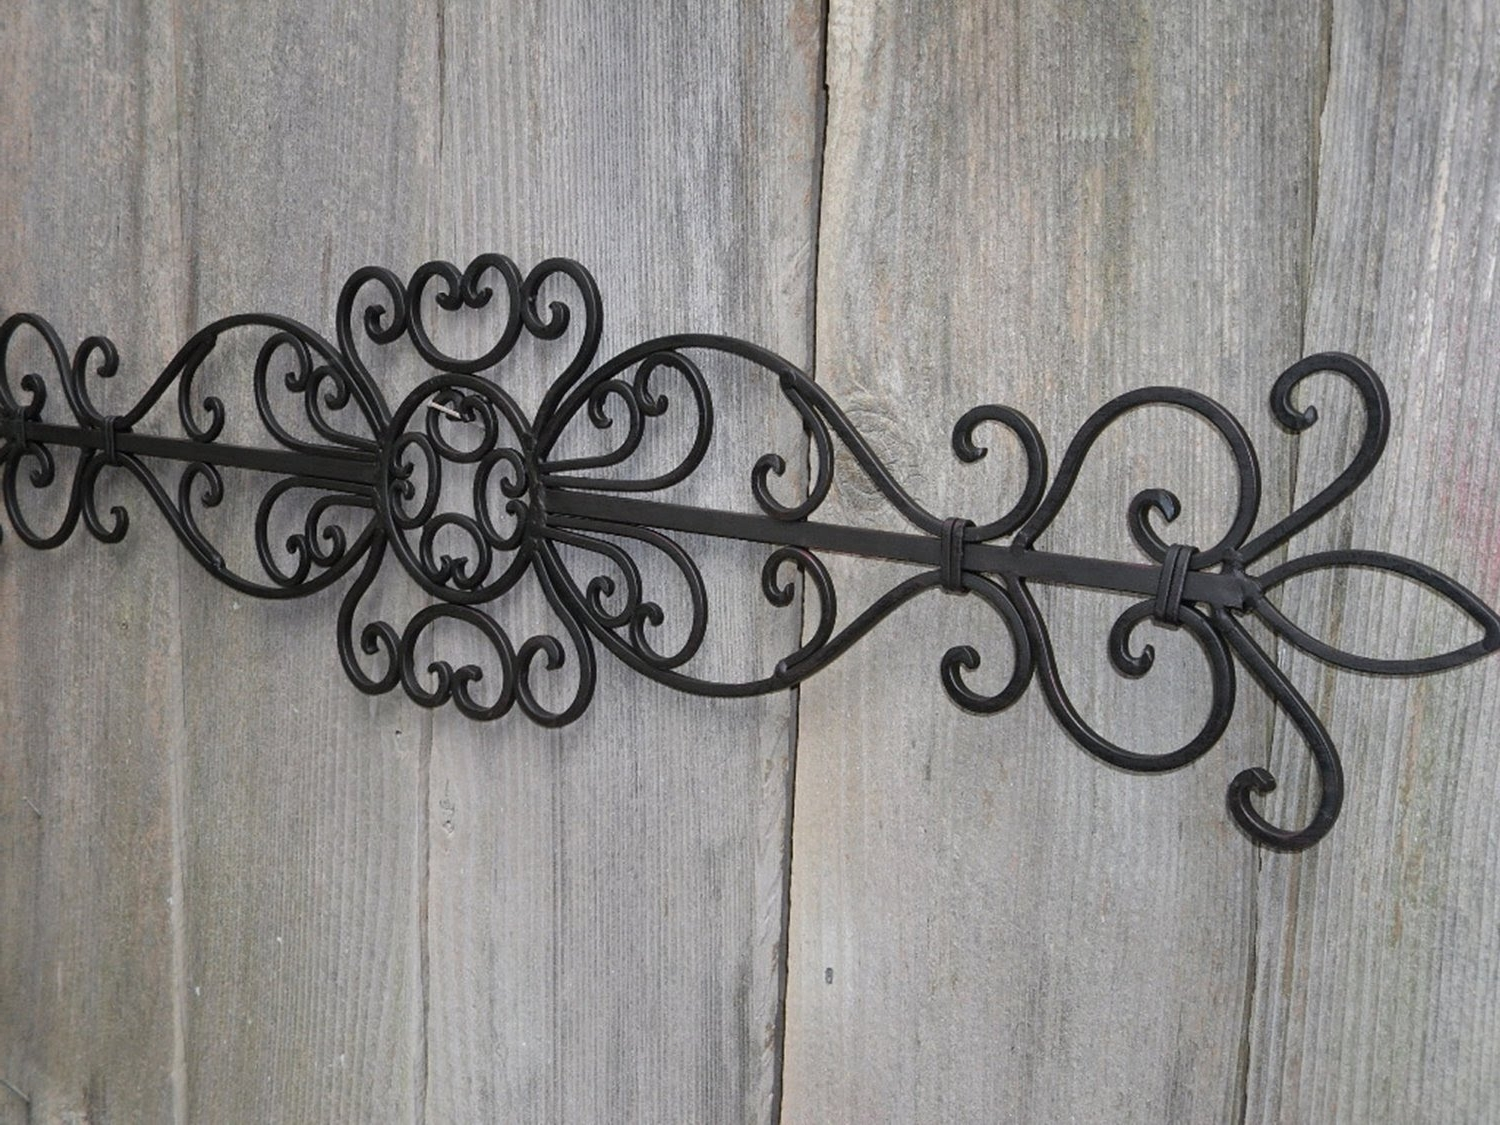 Iron Scroll Wall Art Intended For Current Wall Art Designs: Wrought Iron Wall Art Wrought Iron Wall Decor (Gallery 5 of 15)